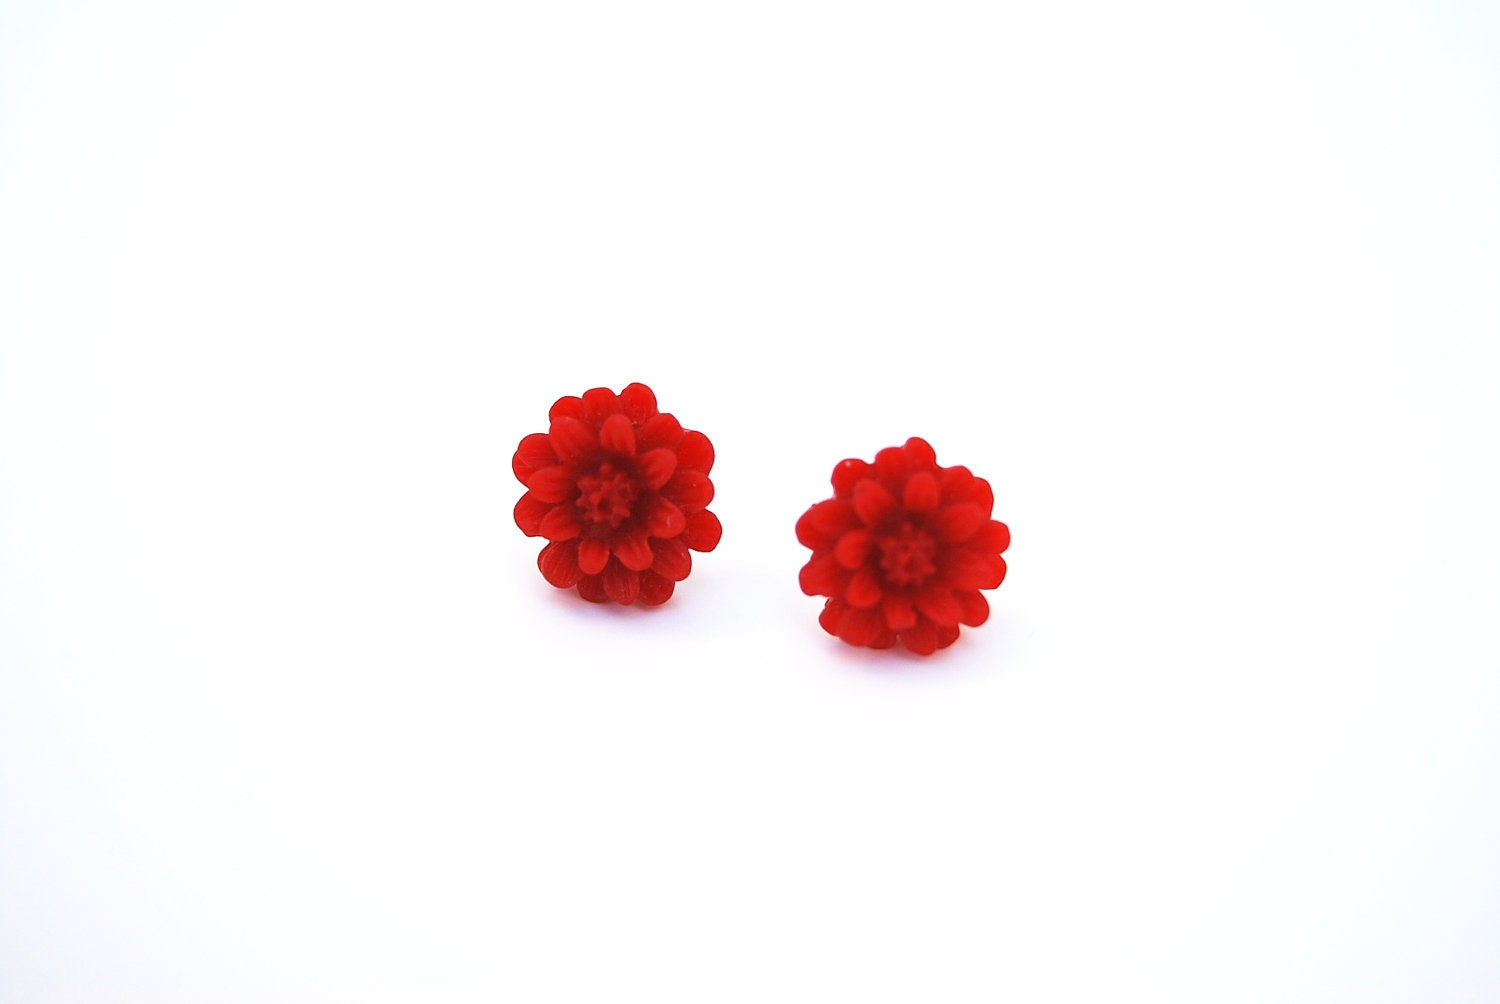 Resin Flower Earring, Red Resin Flower Earring, Flower Earring, Flower Stud Earrings